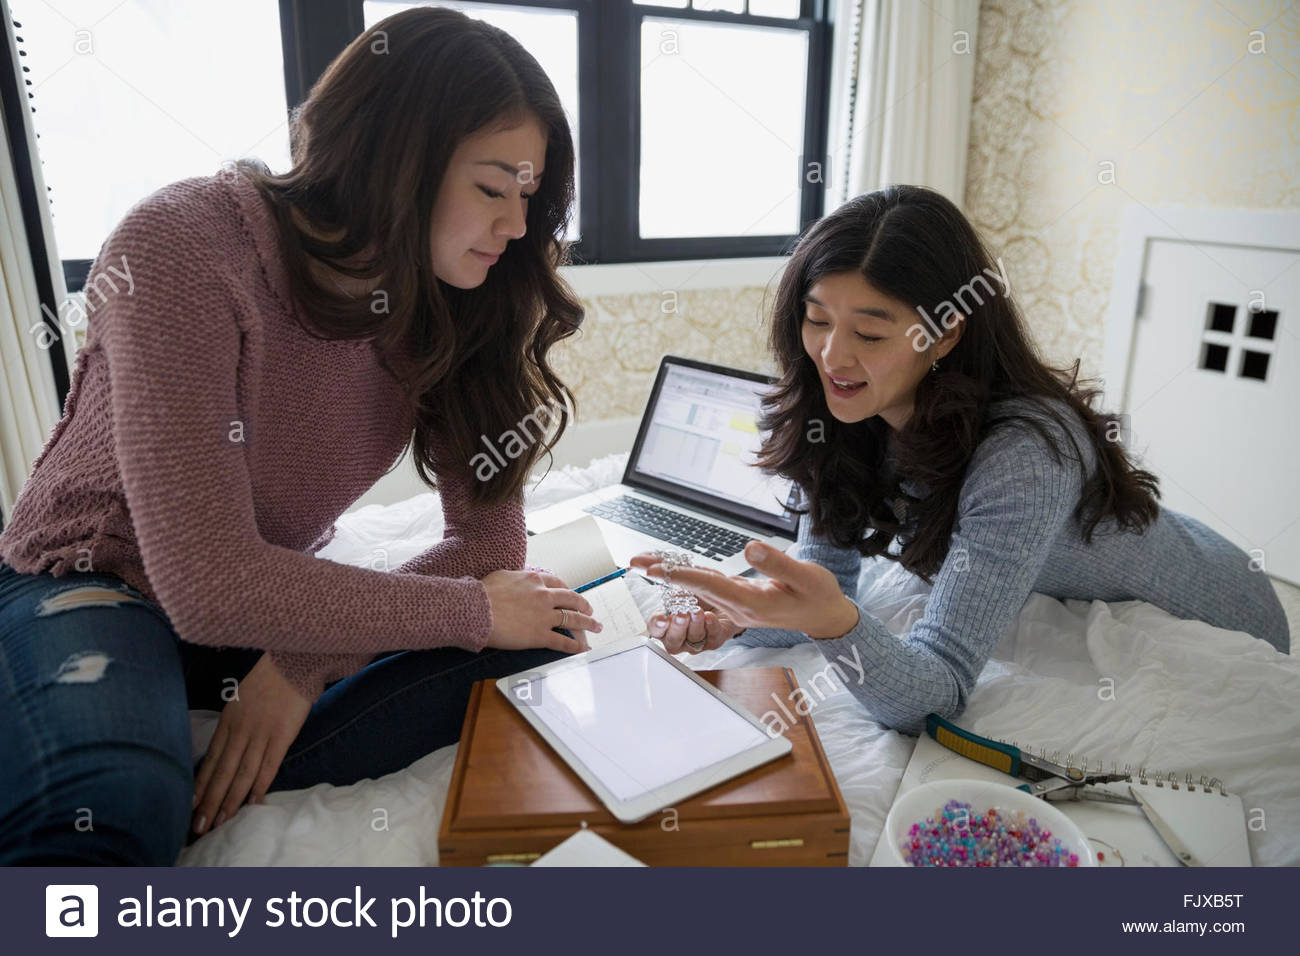 Mother and teenage daughter making jewelry on bed - Stock Image